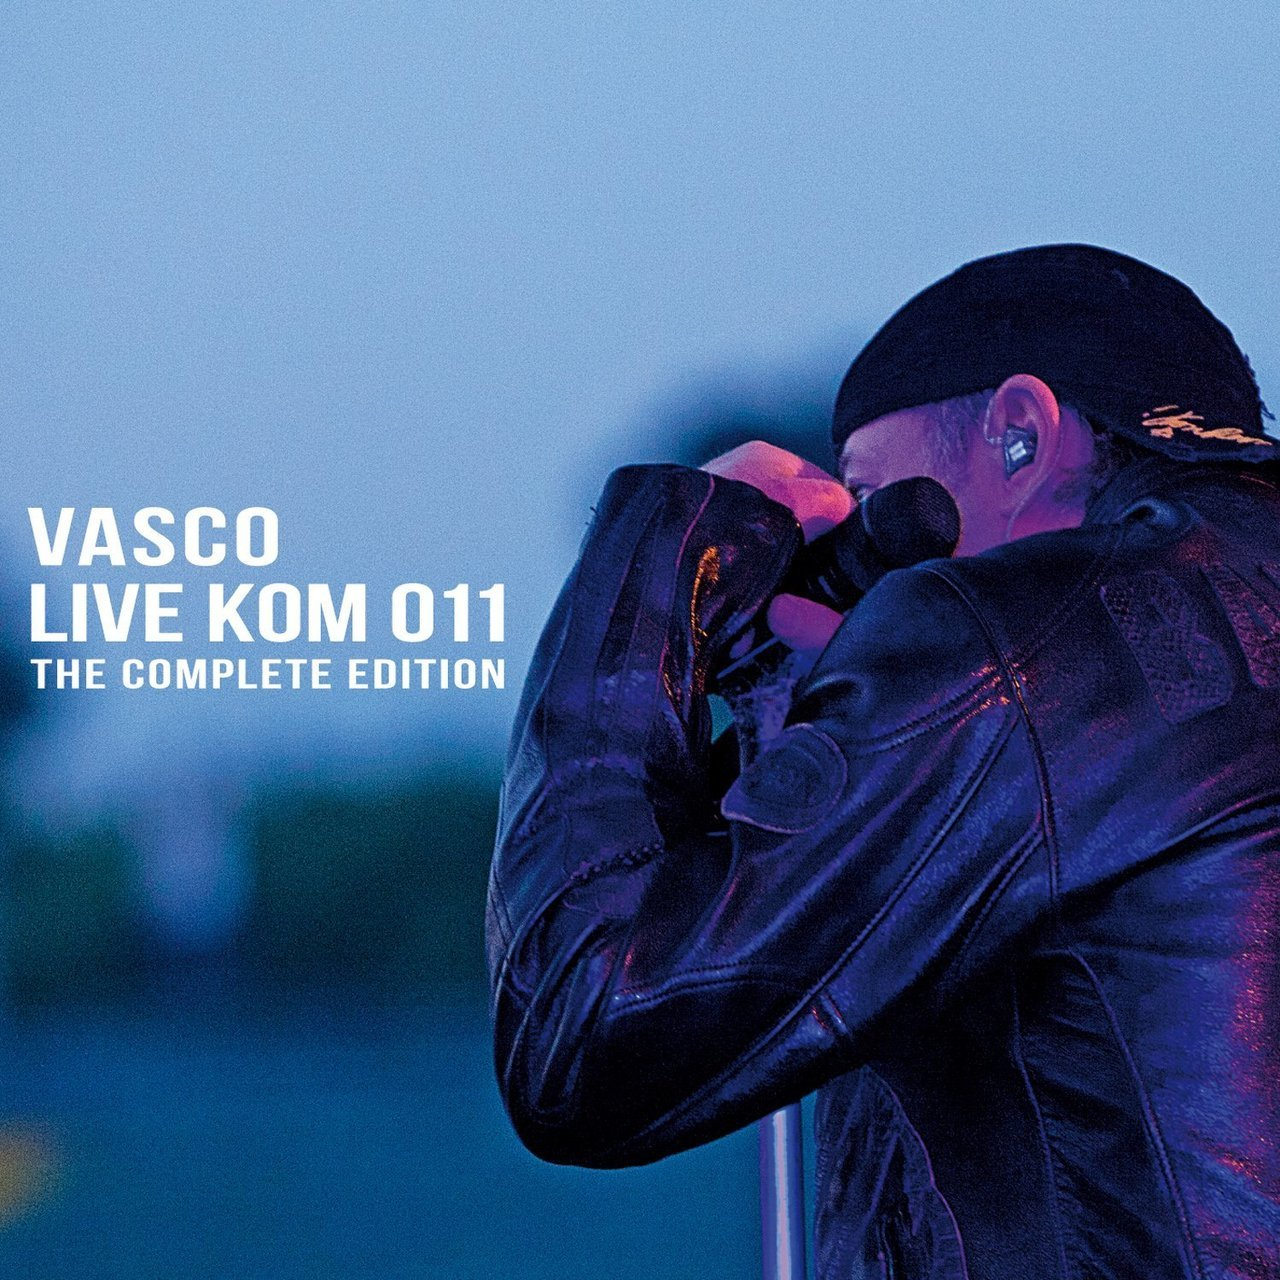 VASCO LIVE KOM 0 - THE COMPLETE EDITION (2CD+1DVD)